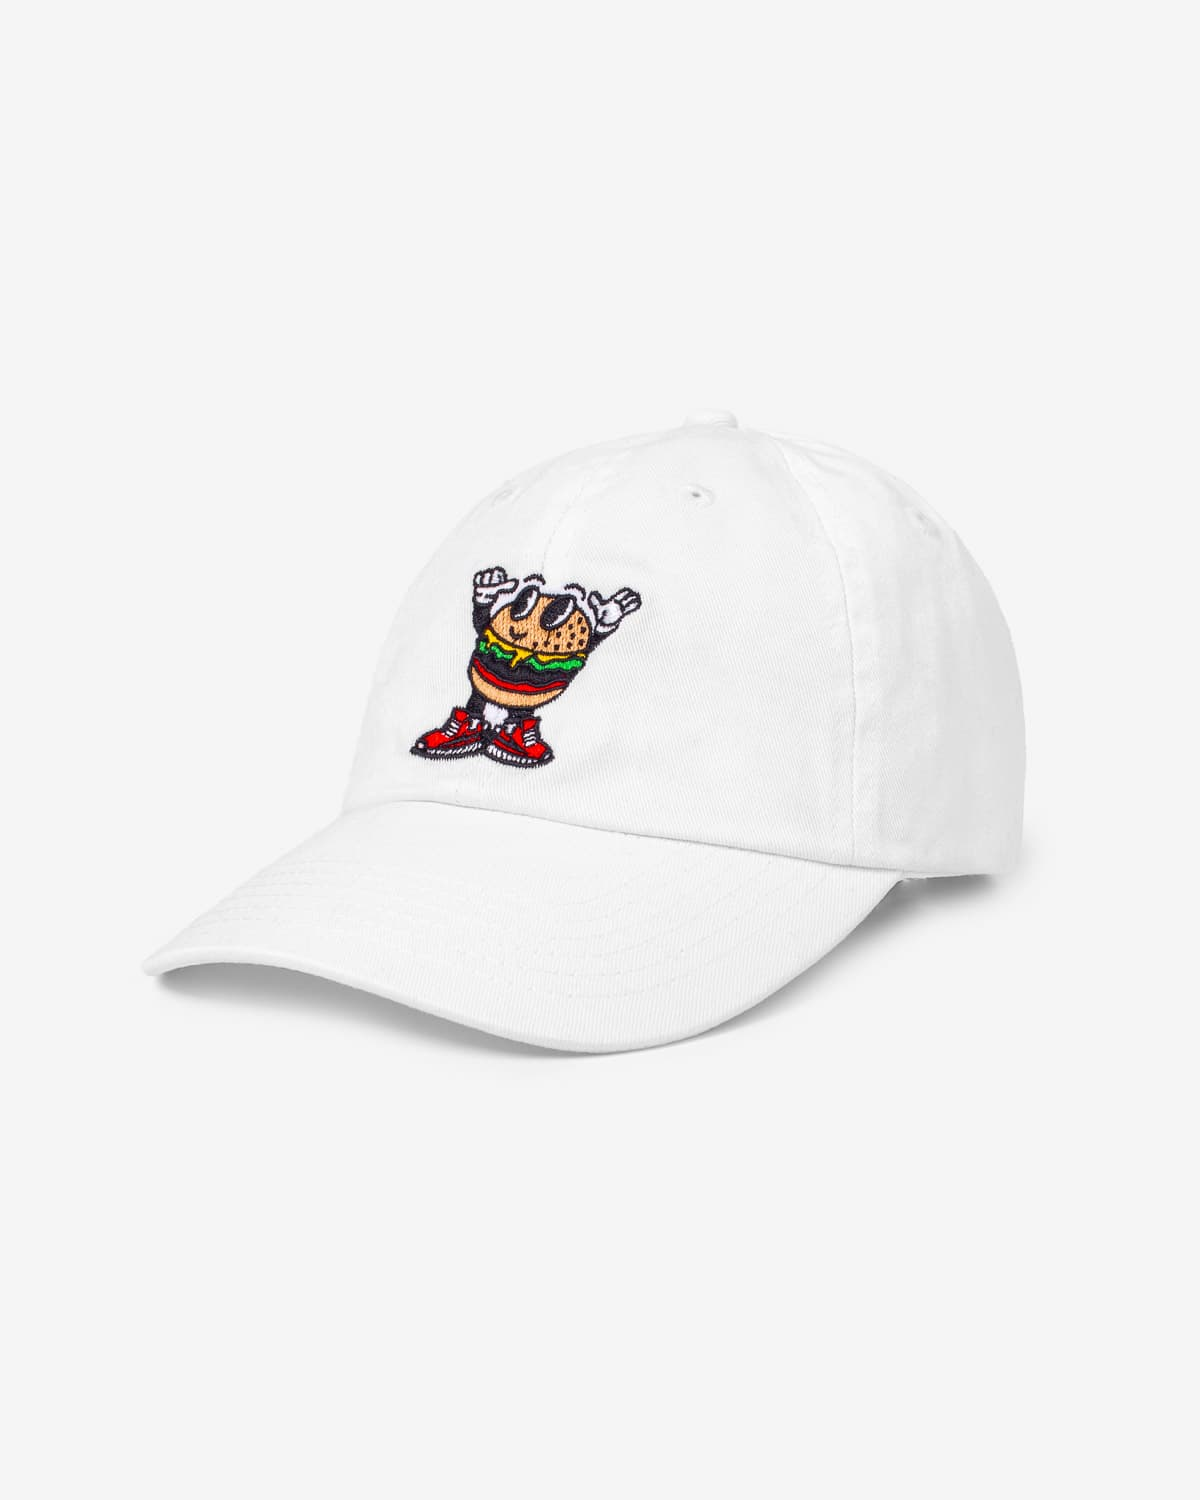 Beast Burger Boy Dad Hat